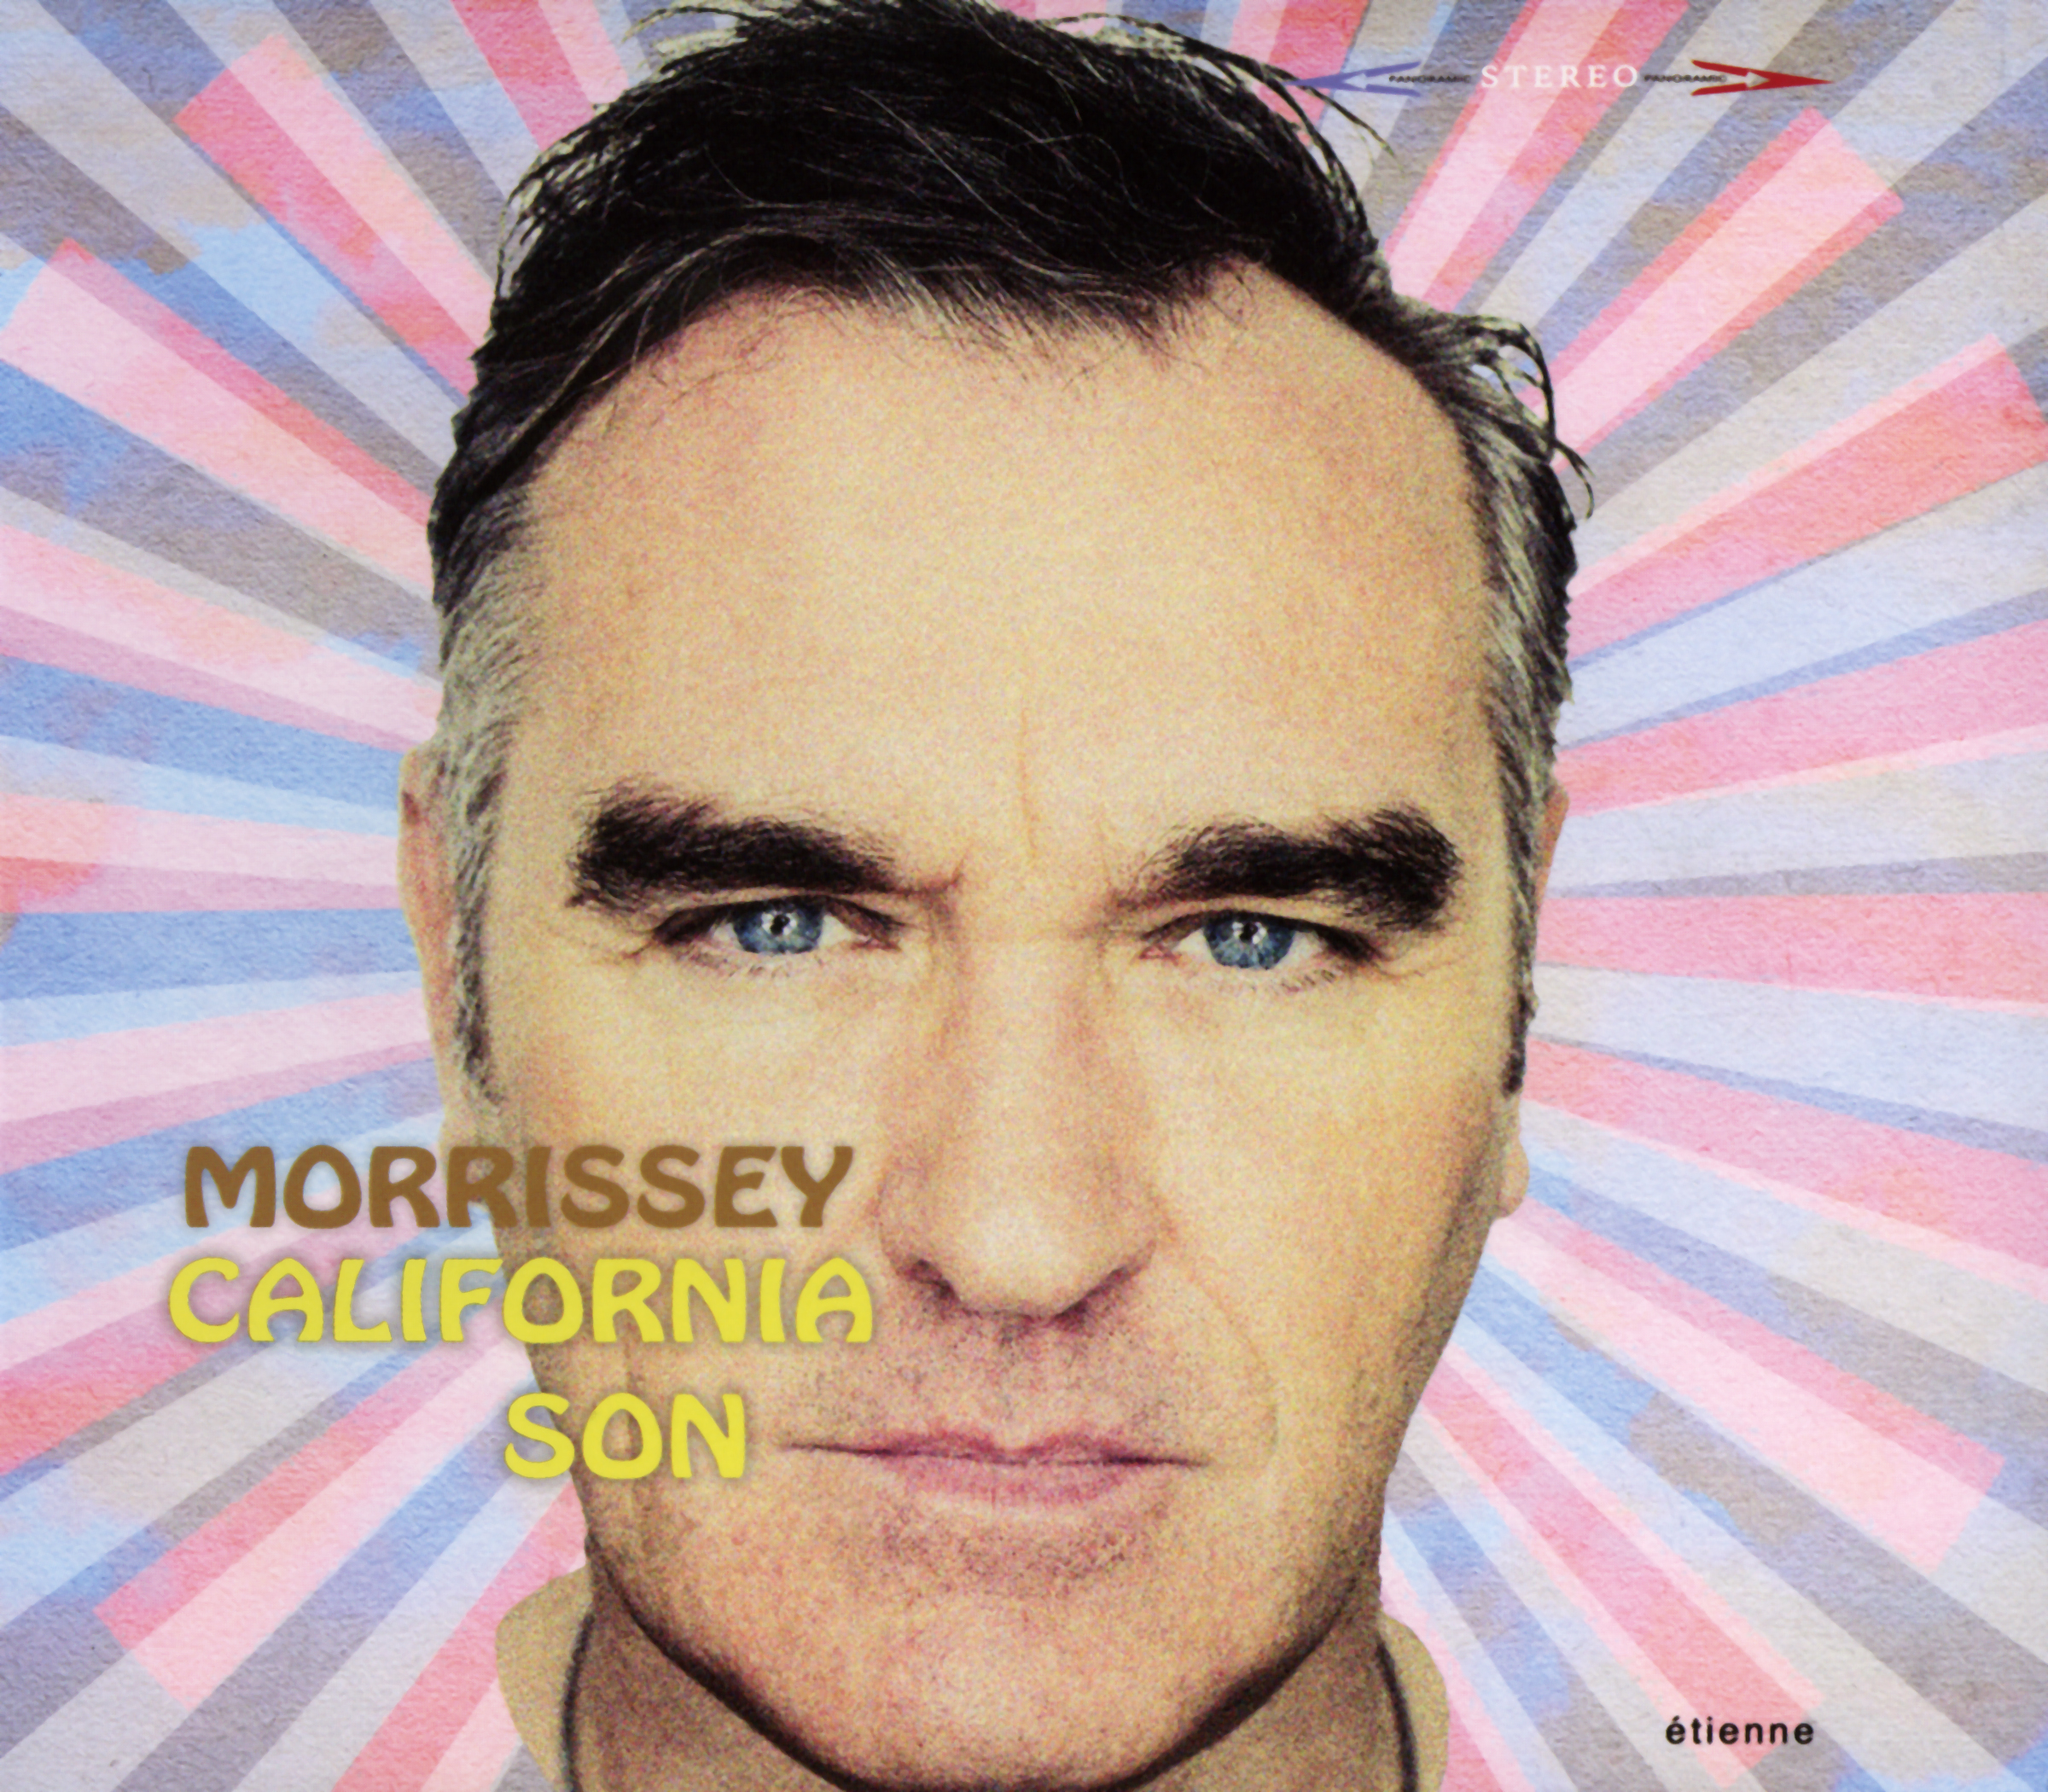 2019-05-24 'California Son' By Morrissey [U.S. Étienne Records Pressing] [Gatefold Cover]